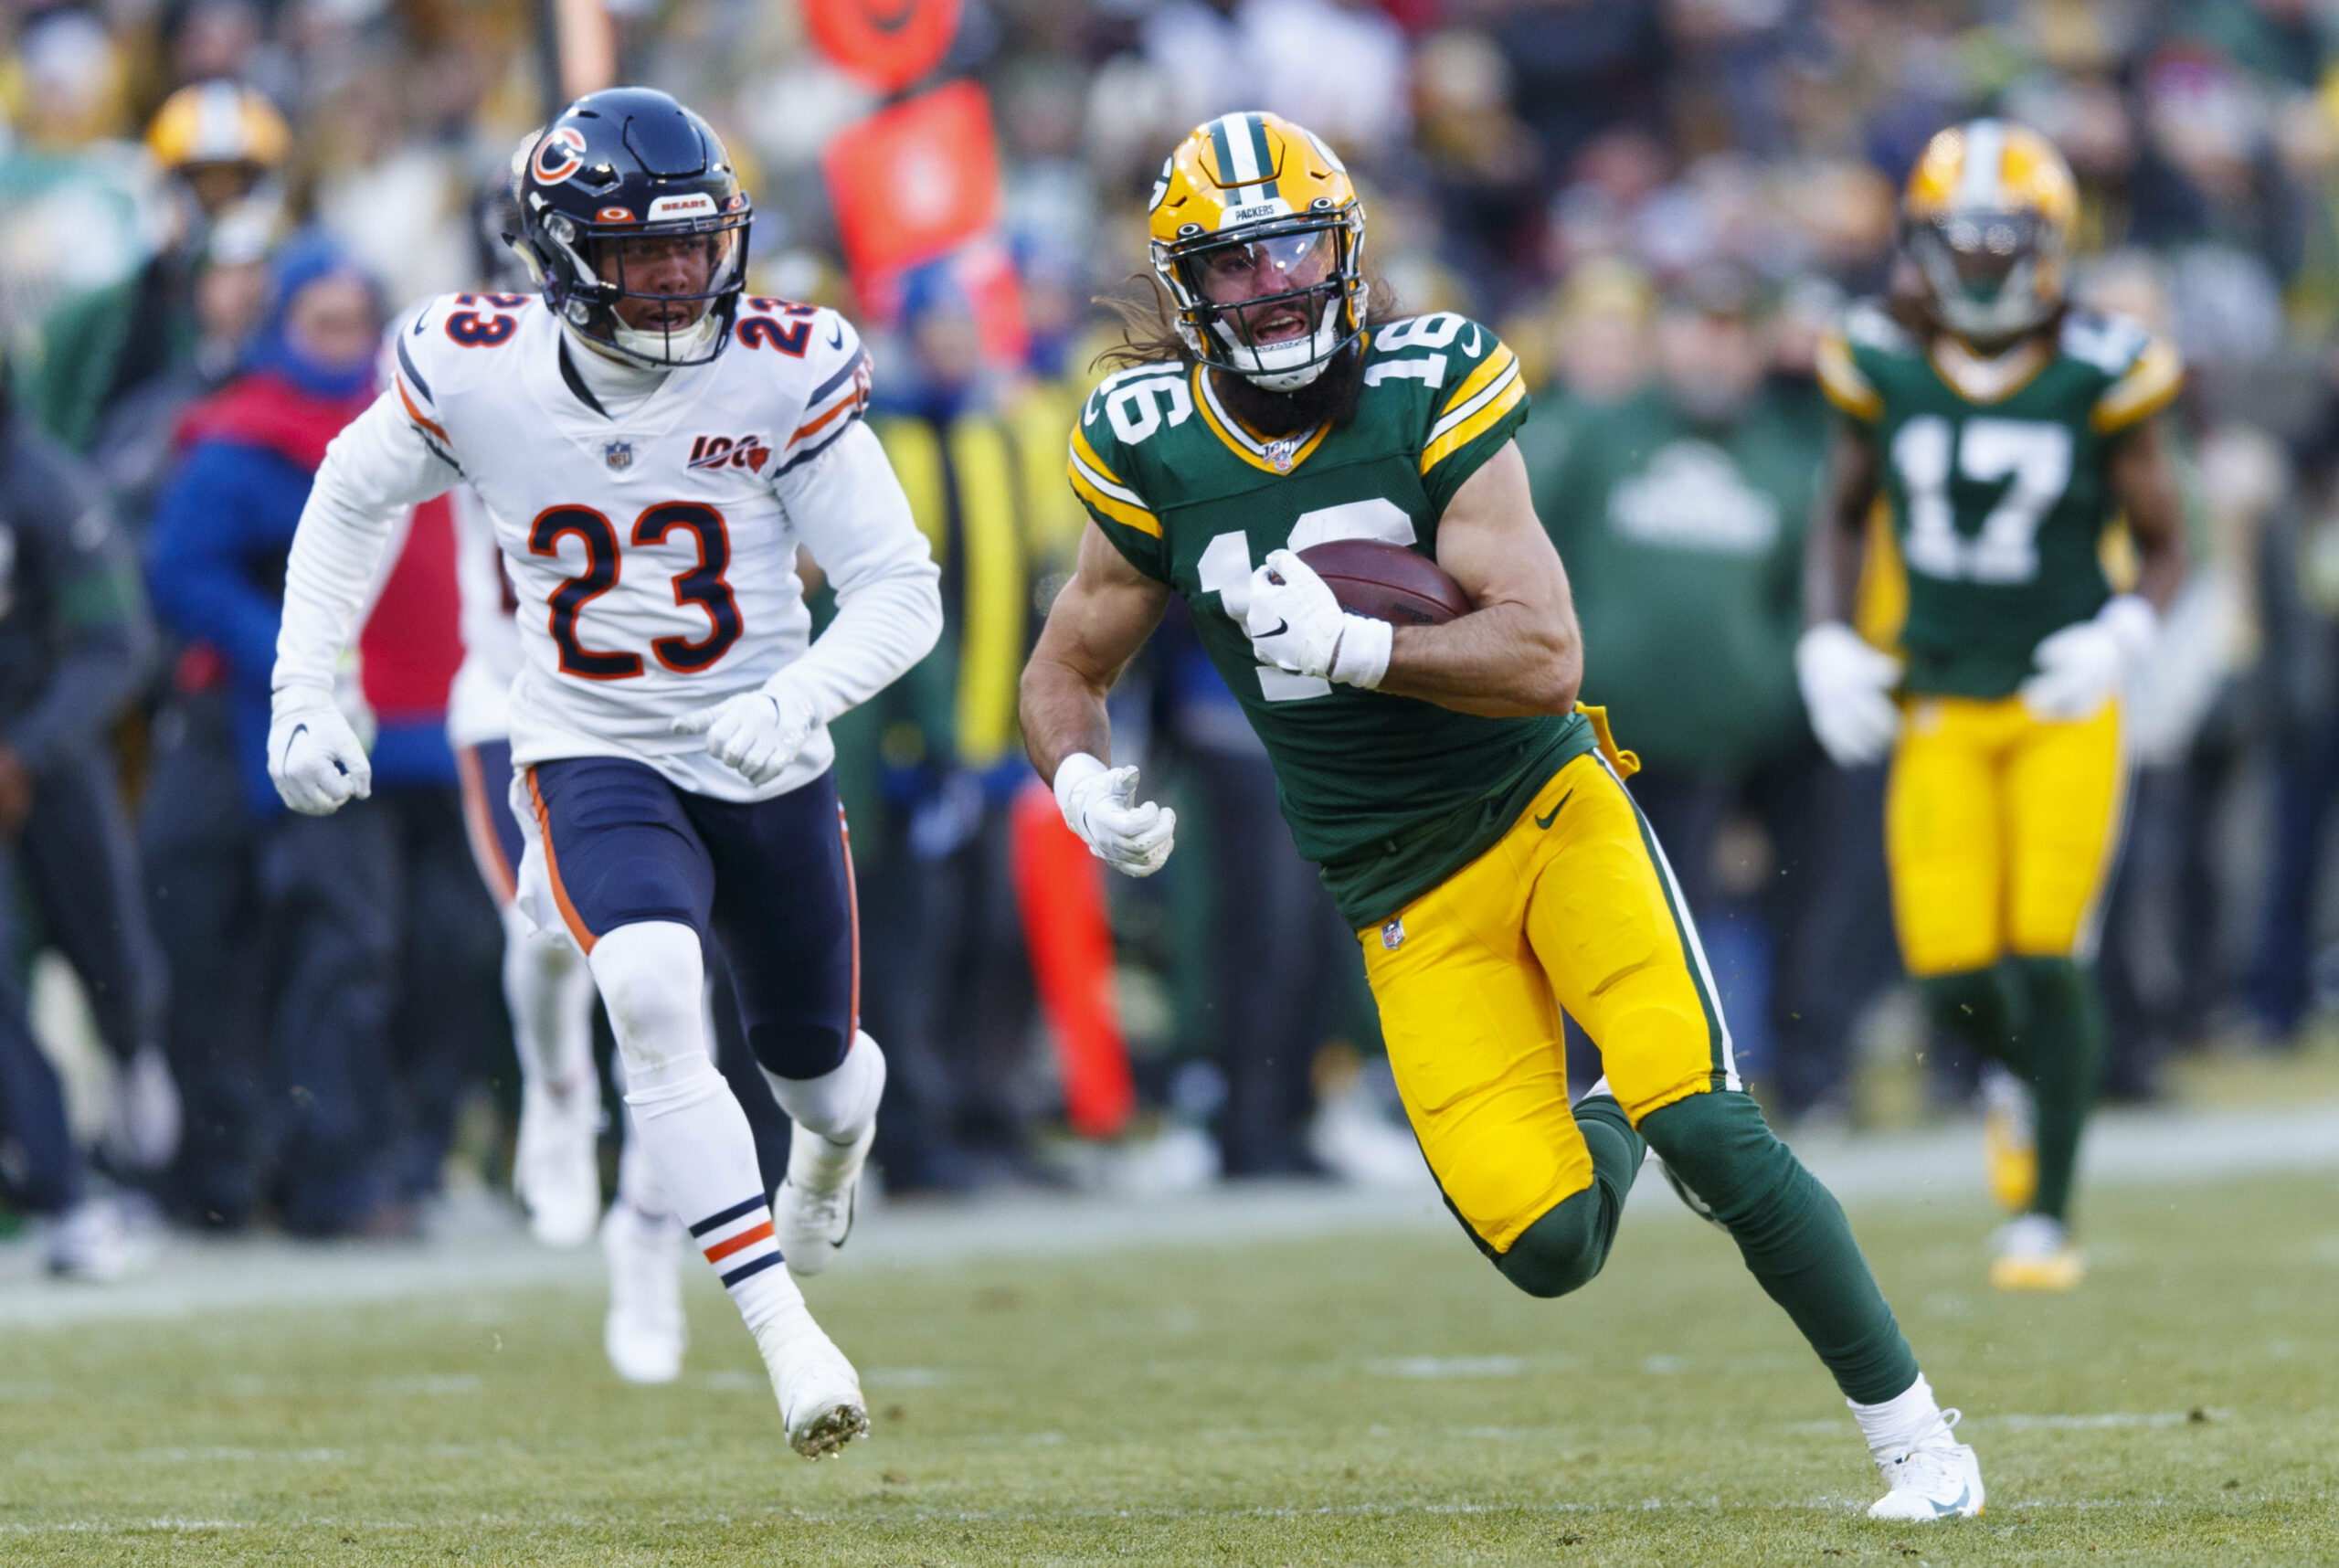 More Kumerow on Tap for Packers Offense